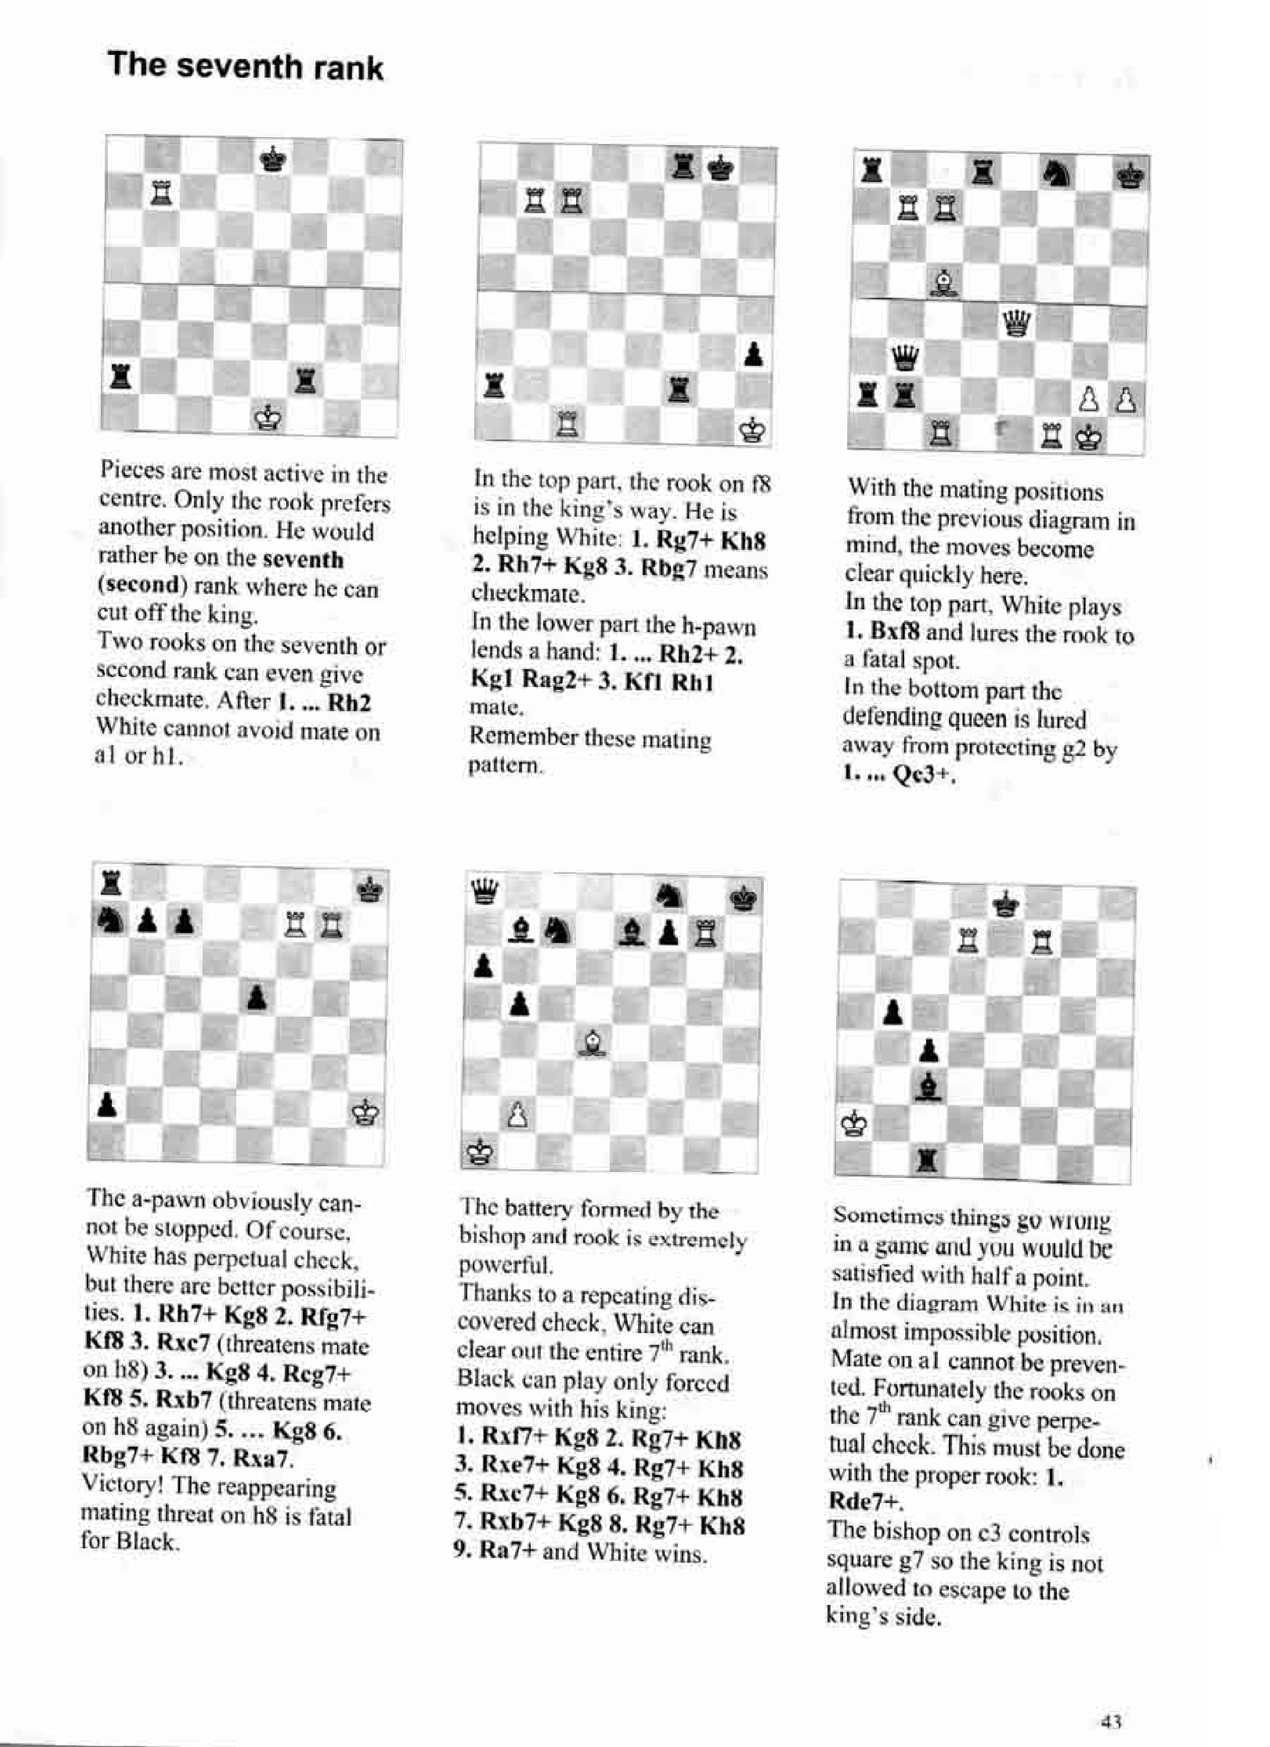 Learning Chess Step 4 Workbook Calameo Downloader Four Move Checkmate Diagram Page 44